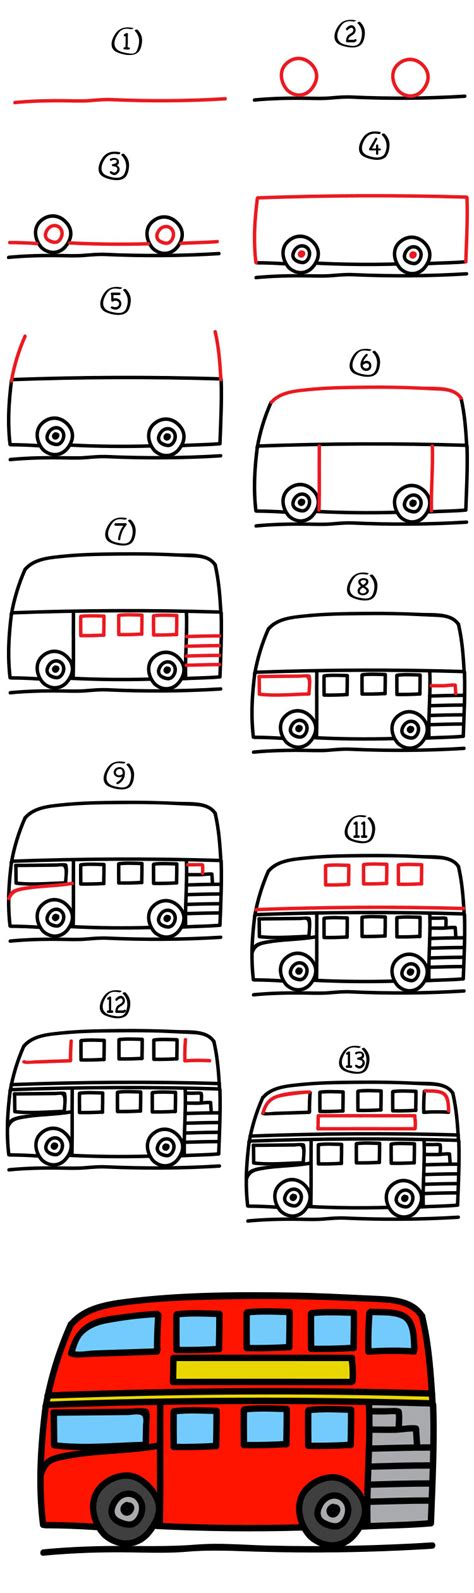 How to draw a double decker bus Step by step Drawing